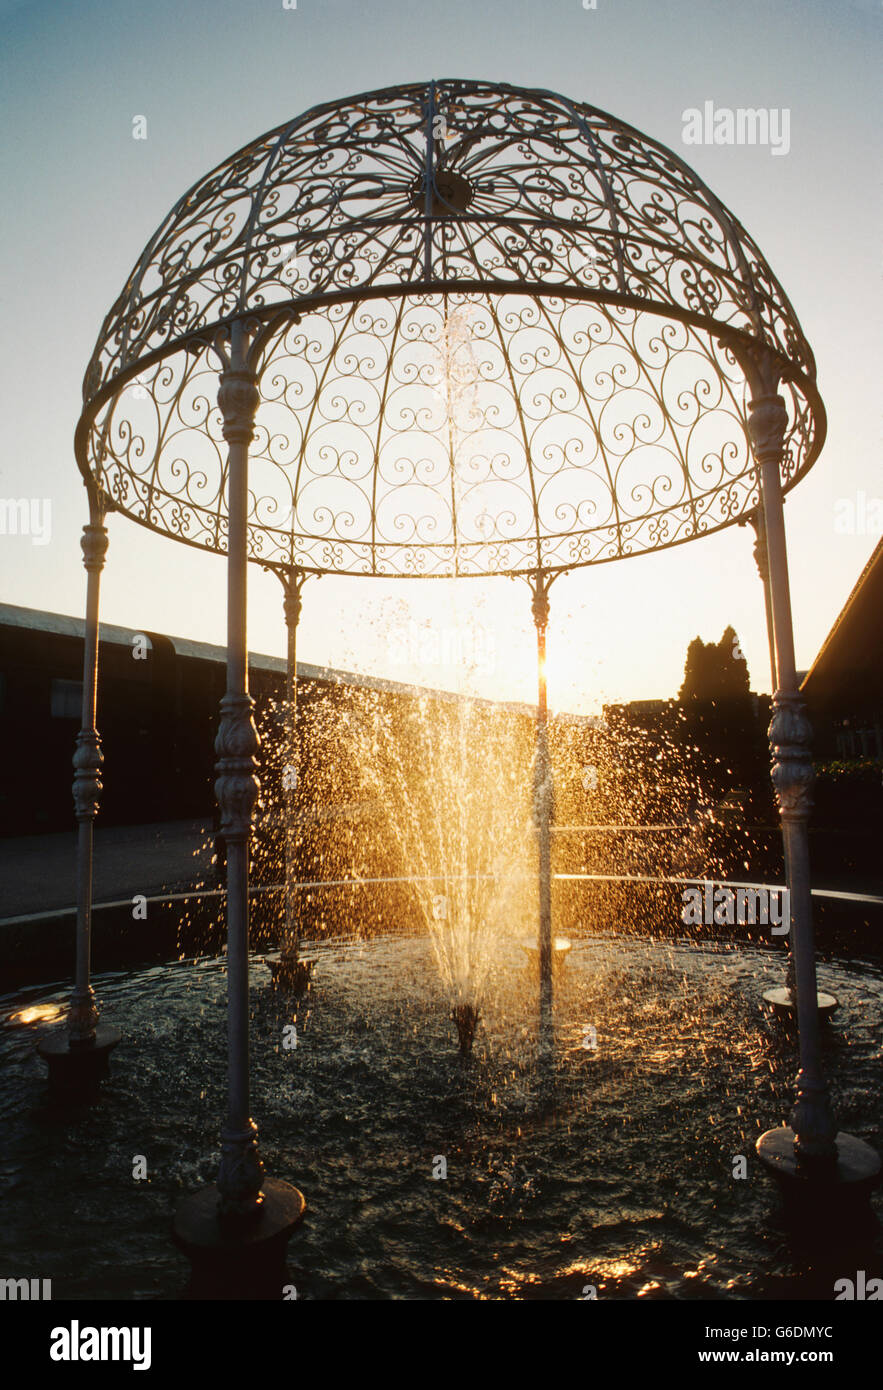 Backlit sunset view of decorative water fountain - Stock Image